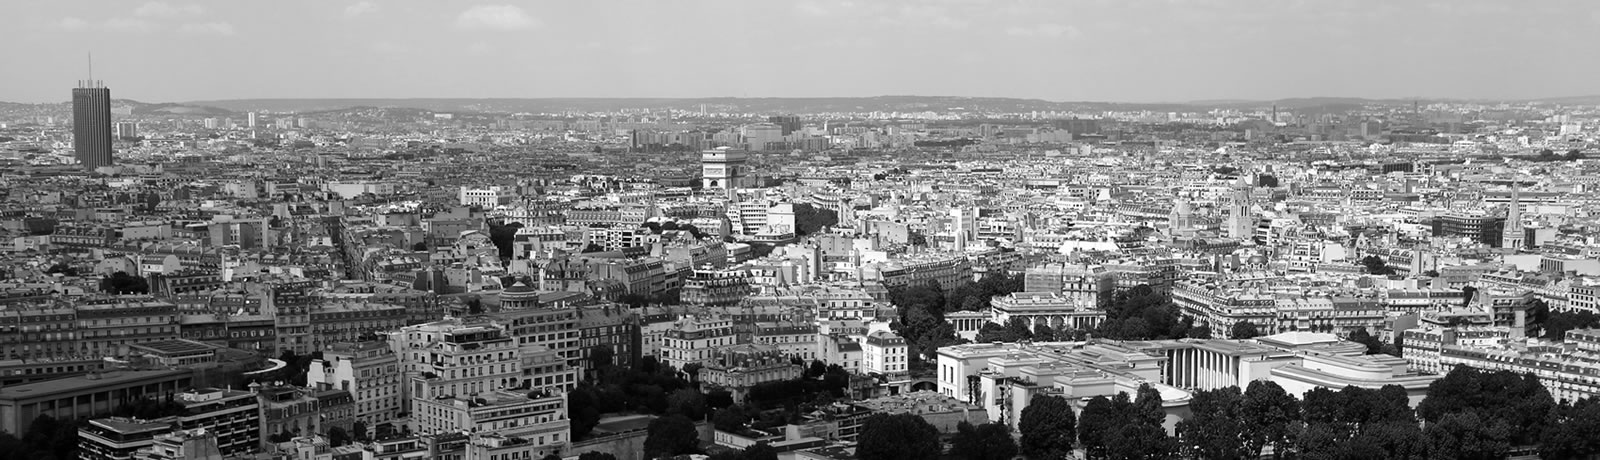 paris-bw-clear